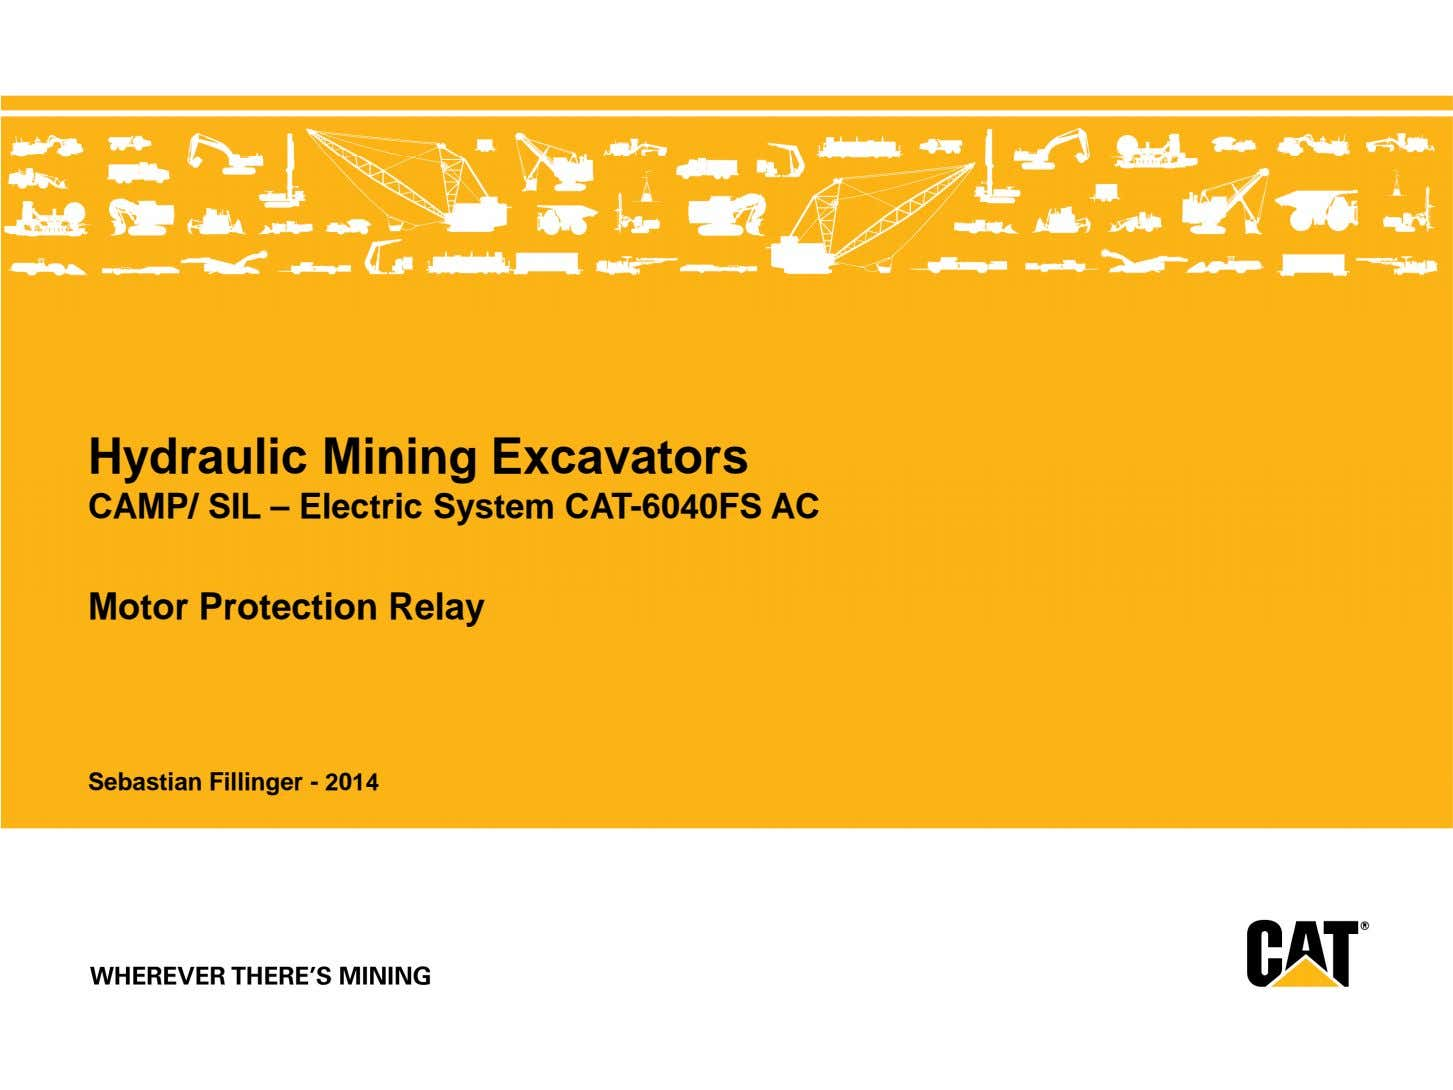 Hydraulic Mining Excavators CAMP/ SIL – Electric System CAT-6040FS AC Motor Protection Relay Sebastian Fillinger